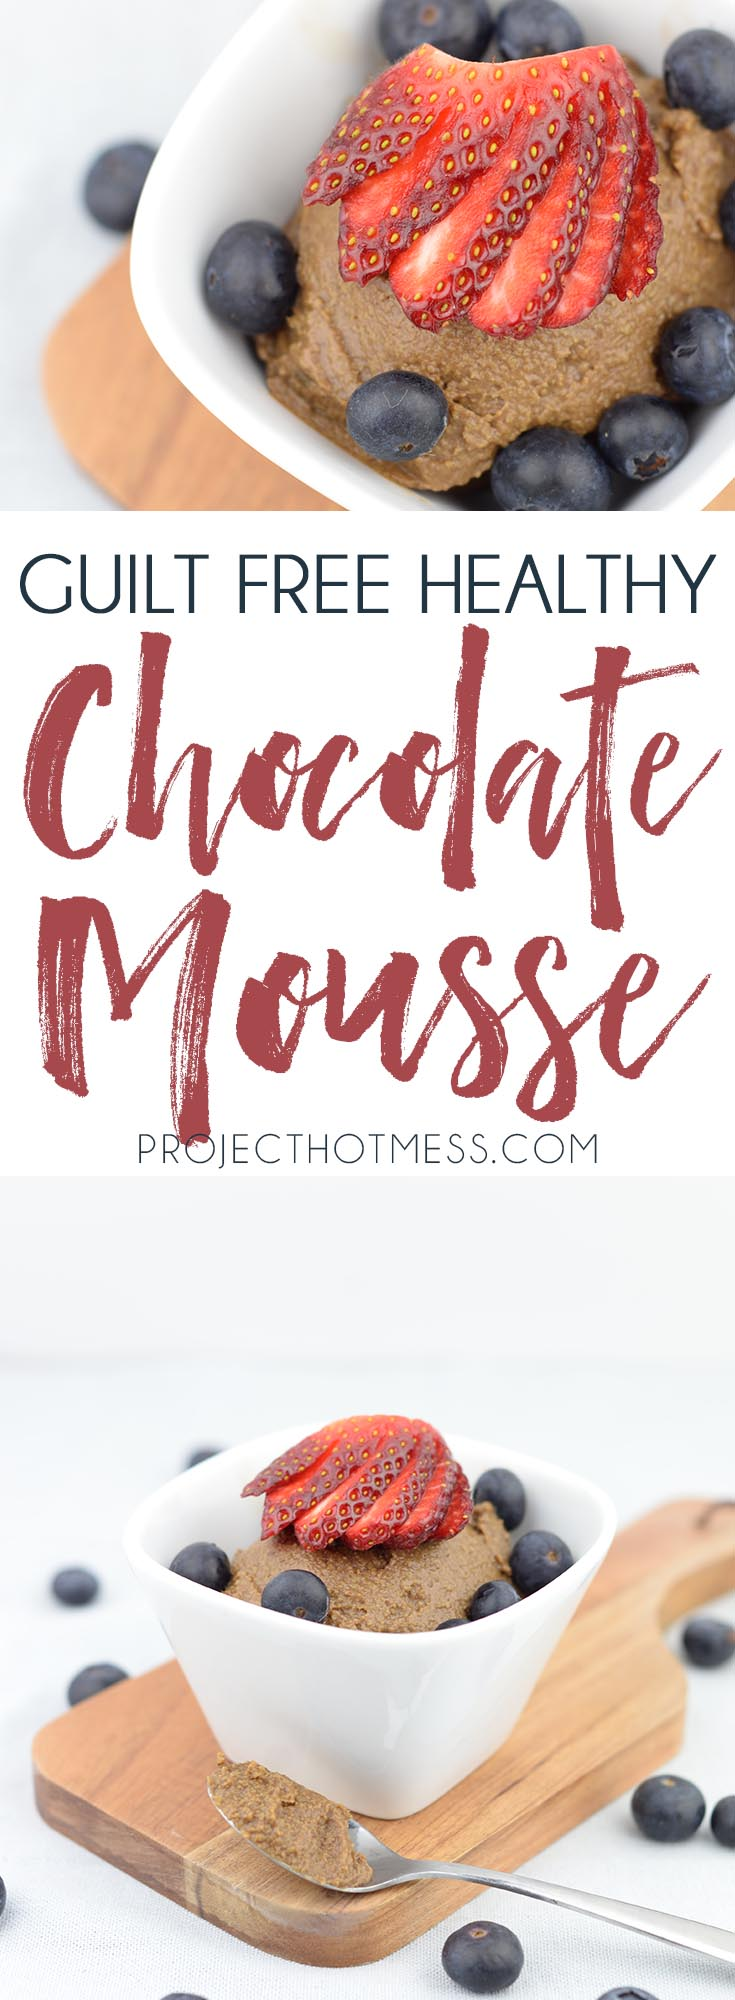 There's no need to avoid indulging in sweet treats when trying to eat healthily. This amazing guilt free, healthy chocolate mousse has you covered. Chocolate | Chocolate Recipe | Chocolate Dessert | Chocolate Treat | Raw Dessert | Paleo Dessert | Healthy Dessert | Vegan Dessert | Vegan Recipe | Raw Recipe | Healthy Recipe | Healthy Chocolate | Avocado Mousse | Paleo Mousse | Vegan Mousse | Keto Recipe | Keto Desserts | LCHF